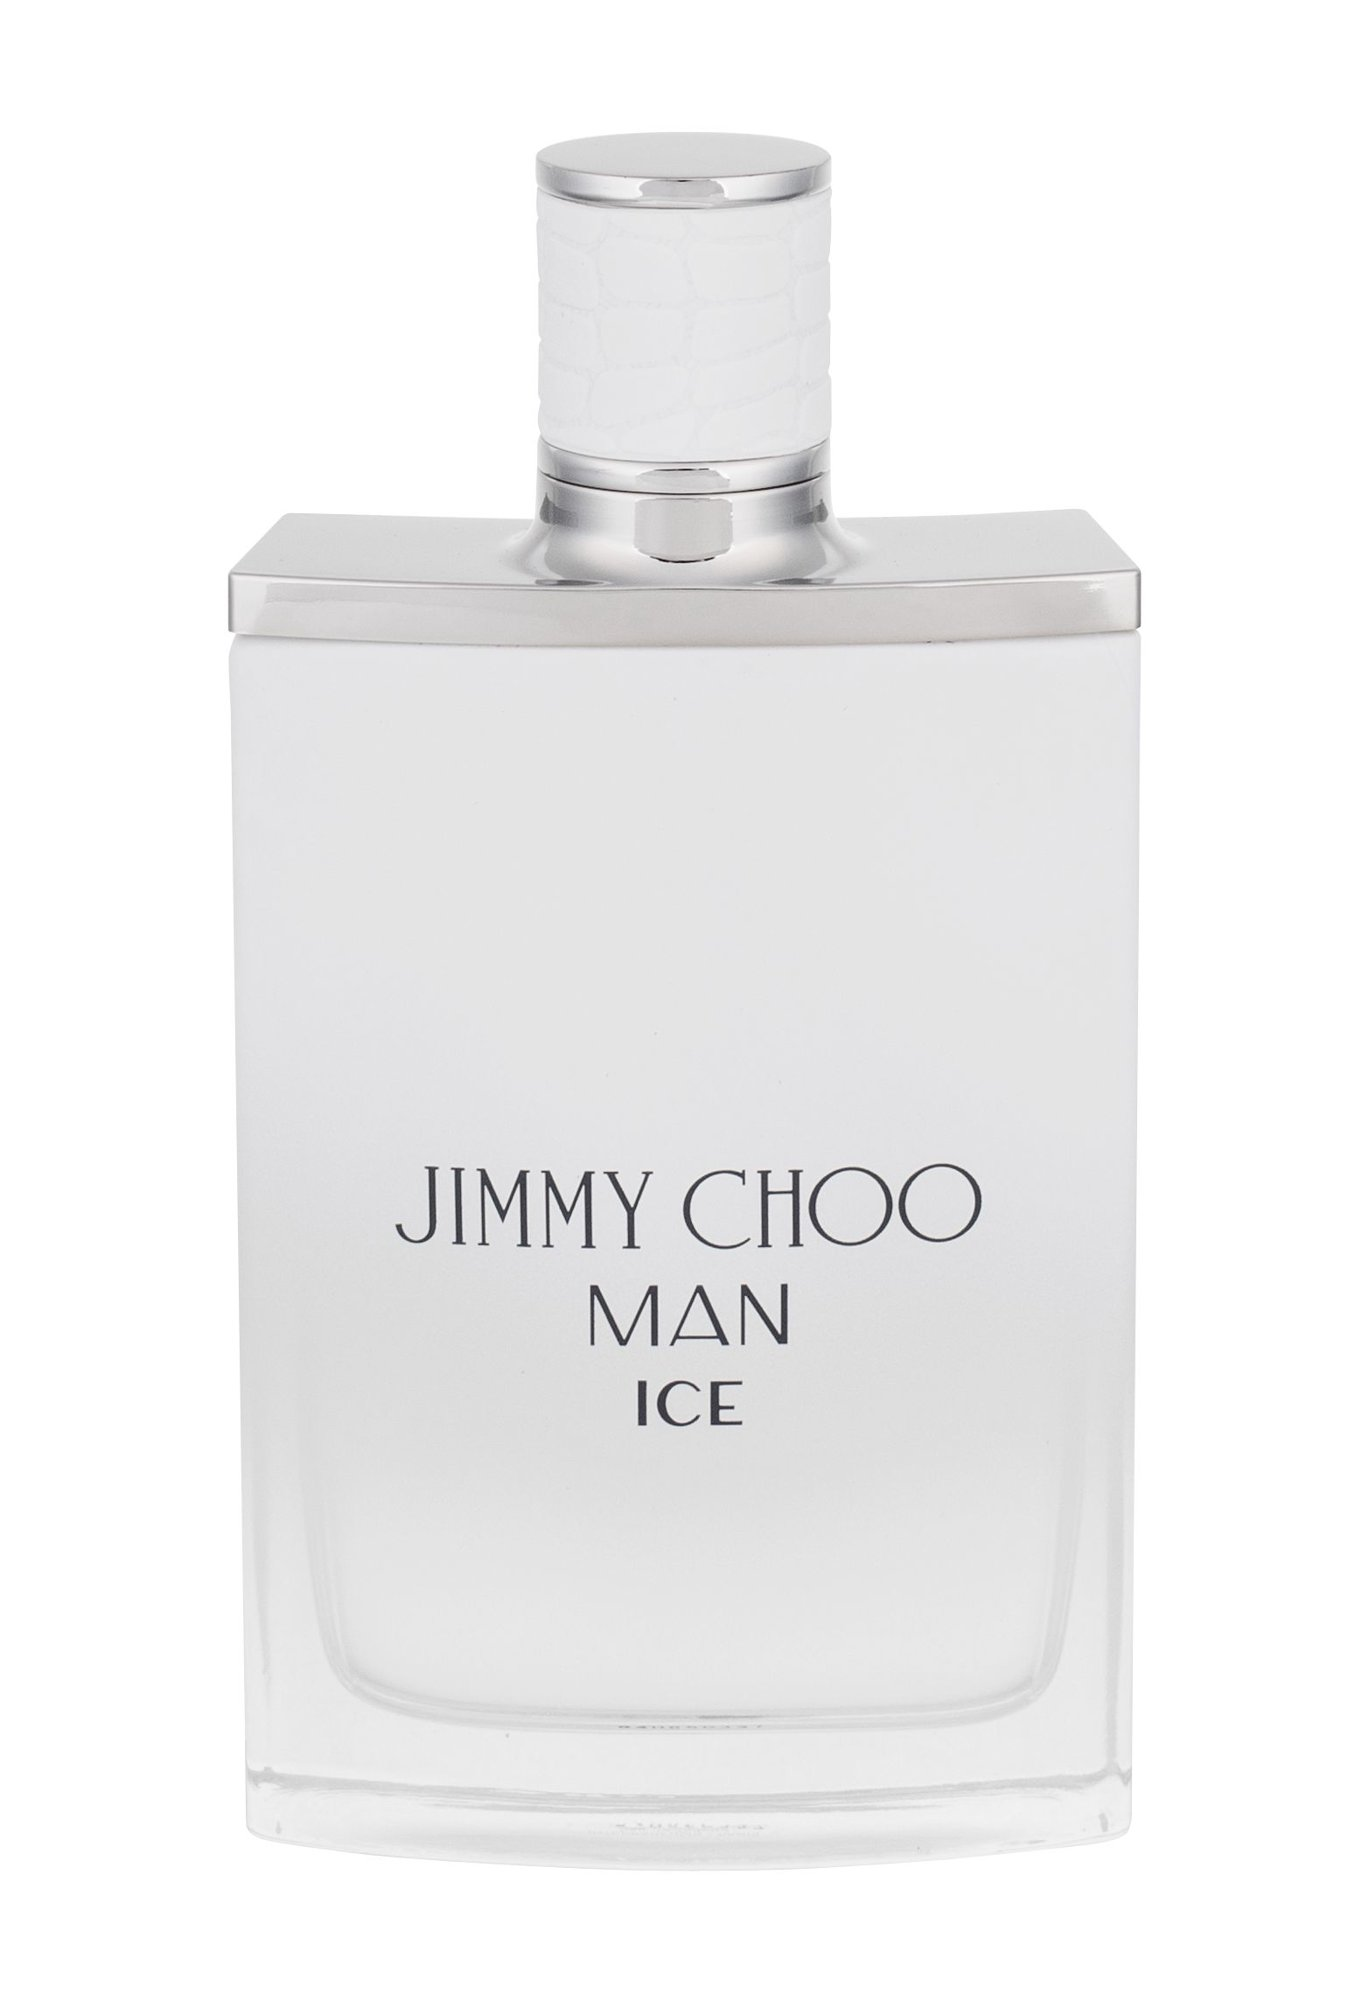 Jimmy Choo Jimmy Choo Man Ice EDT 100ml